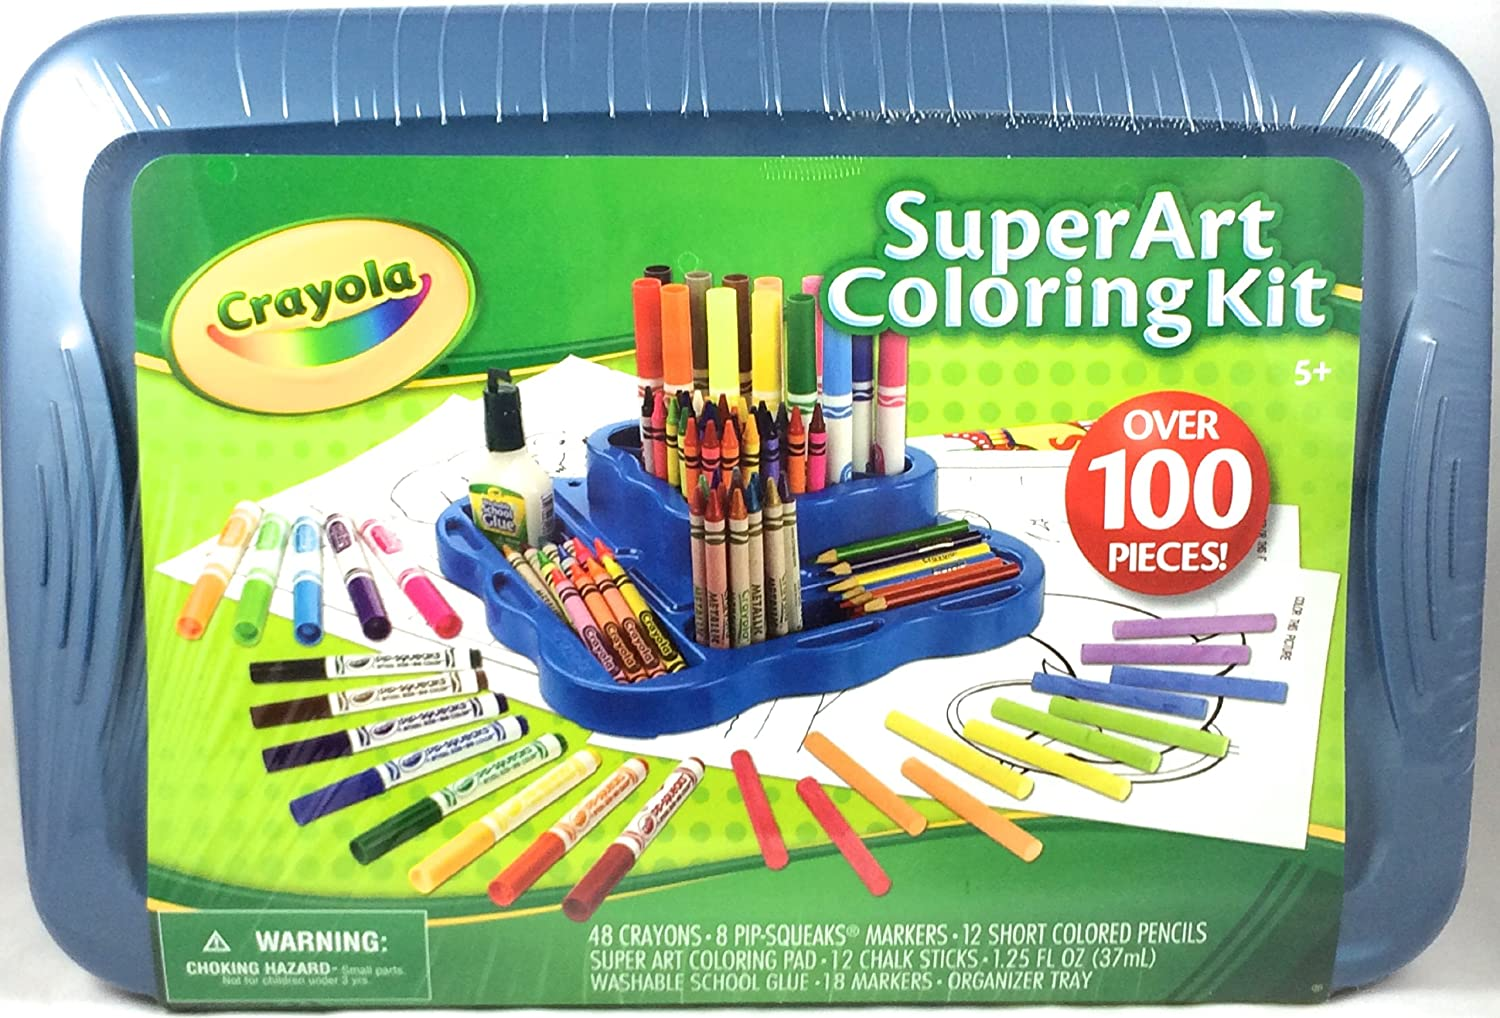 Amazon.com: Crayola Super Art Coloring Kit - BLUE: Toys & Games